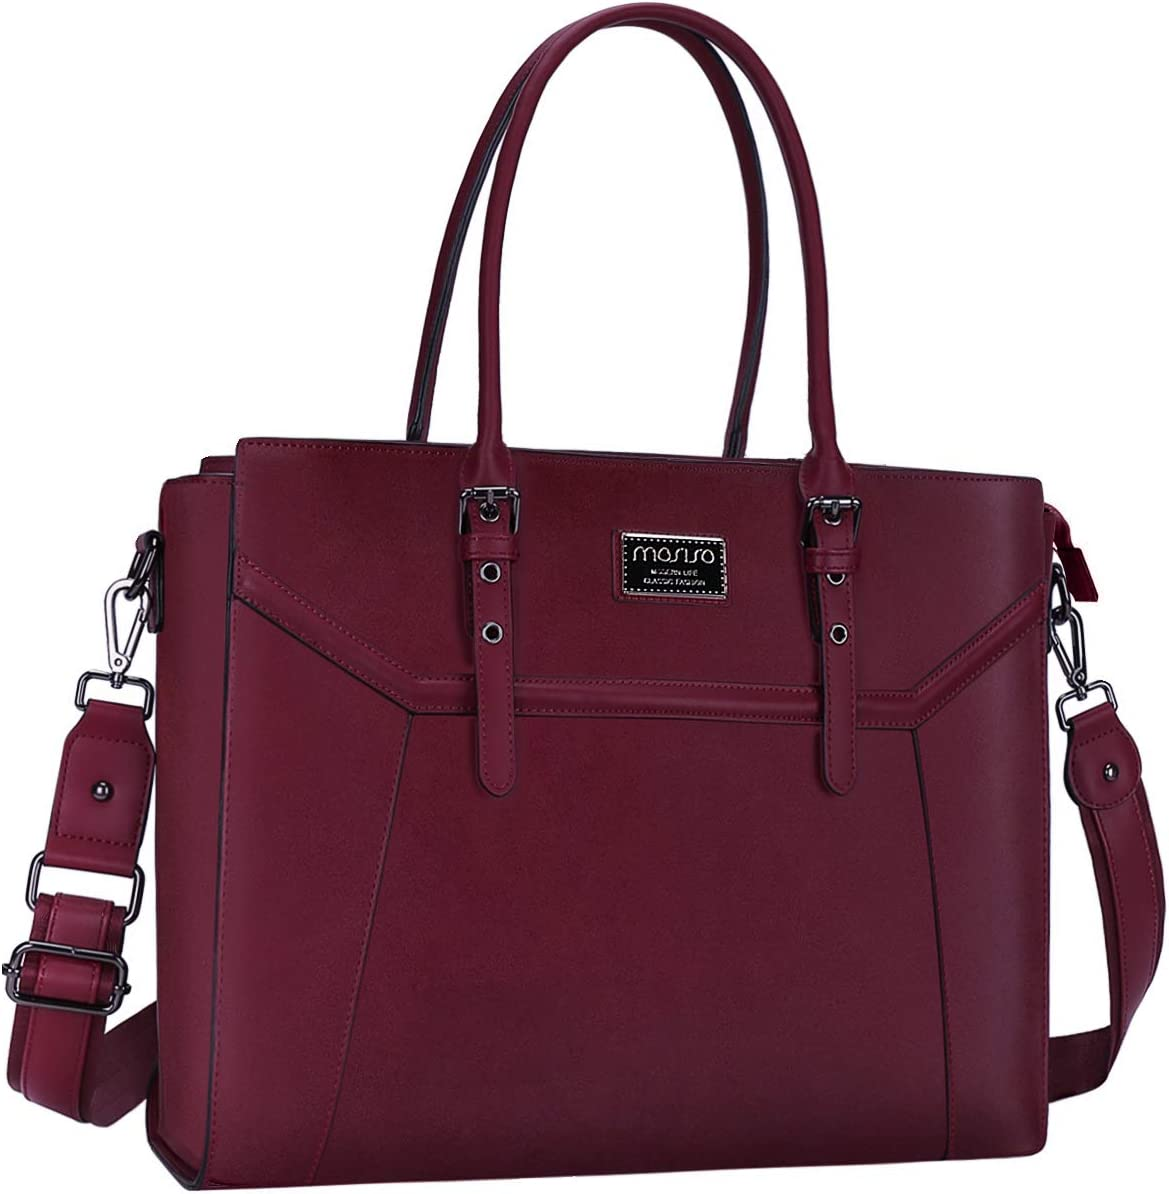 MOSISO 15.6 inch Women Laptop Tote Bag with Shockproof Compartment, Wine Red